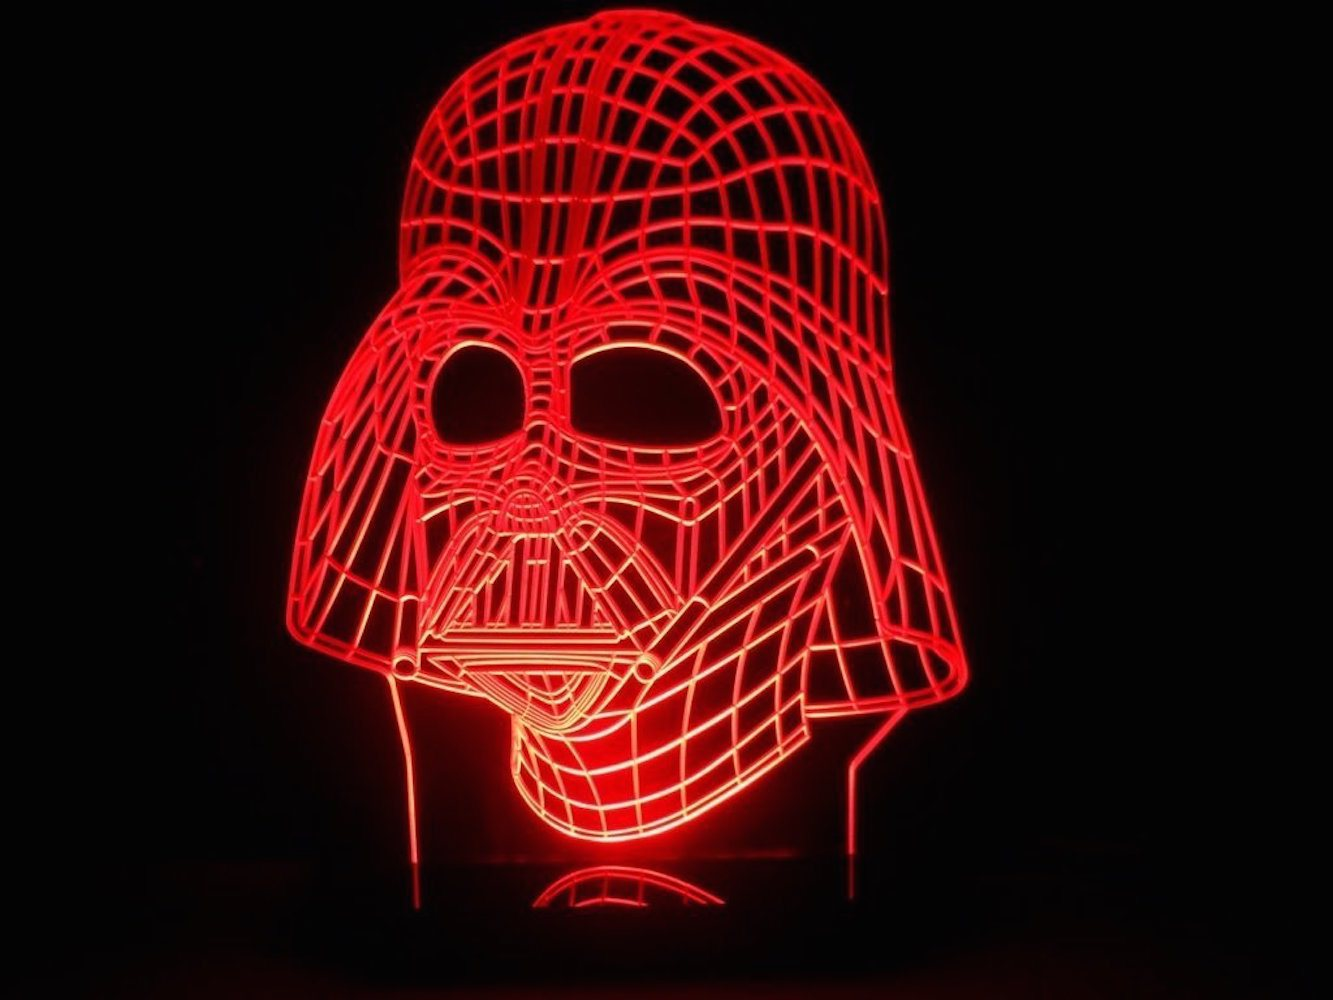 Darth Vader LED Light Table Lamp » Gadget Flow